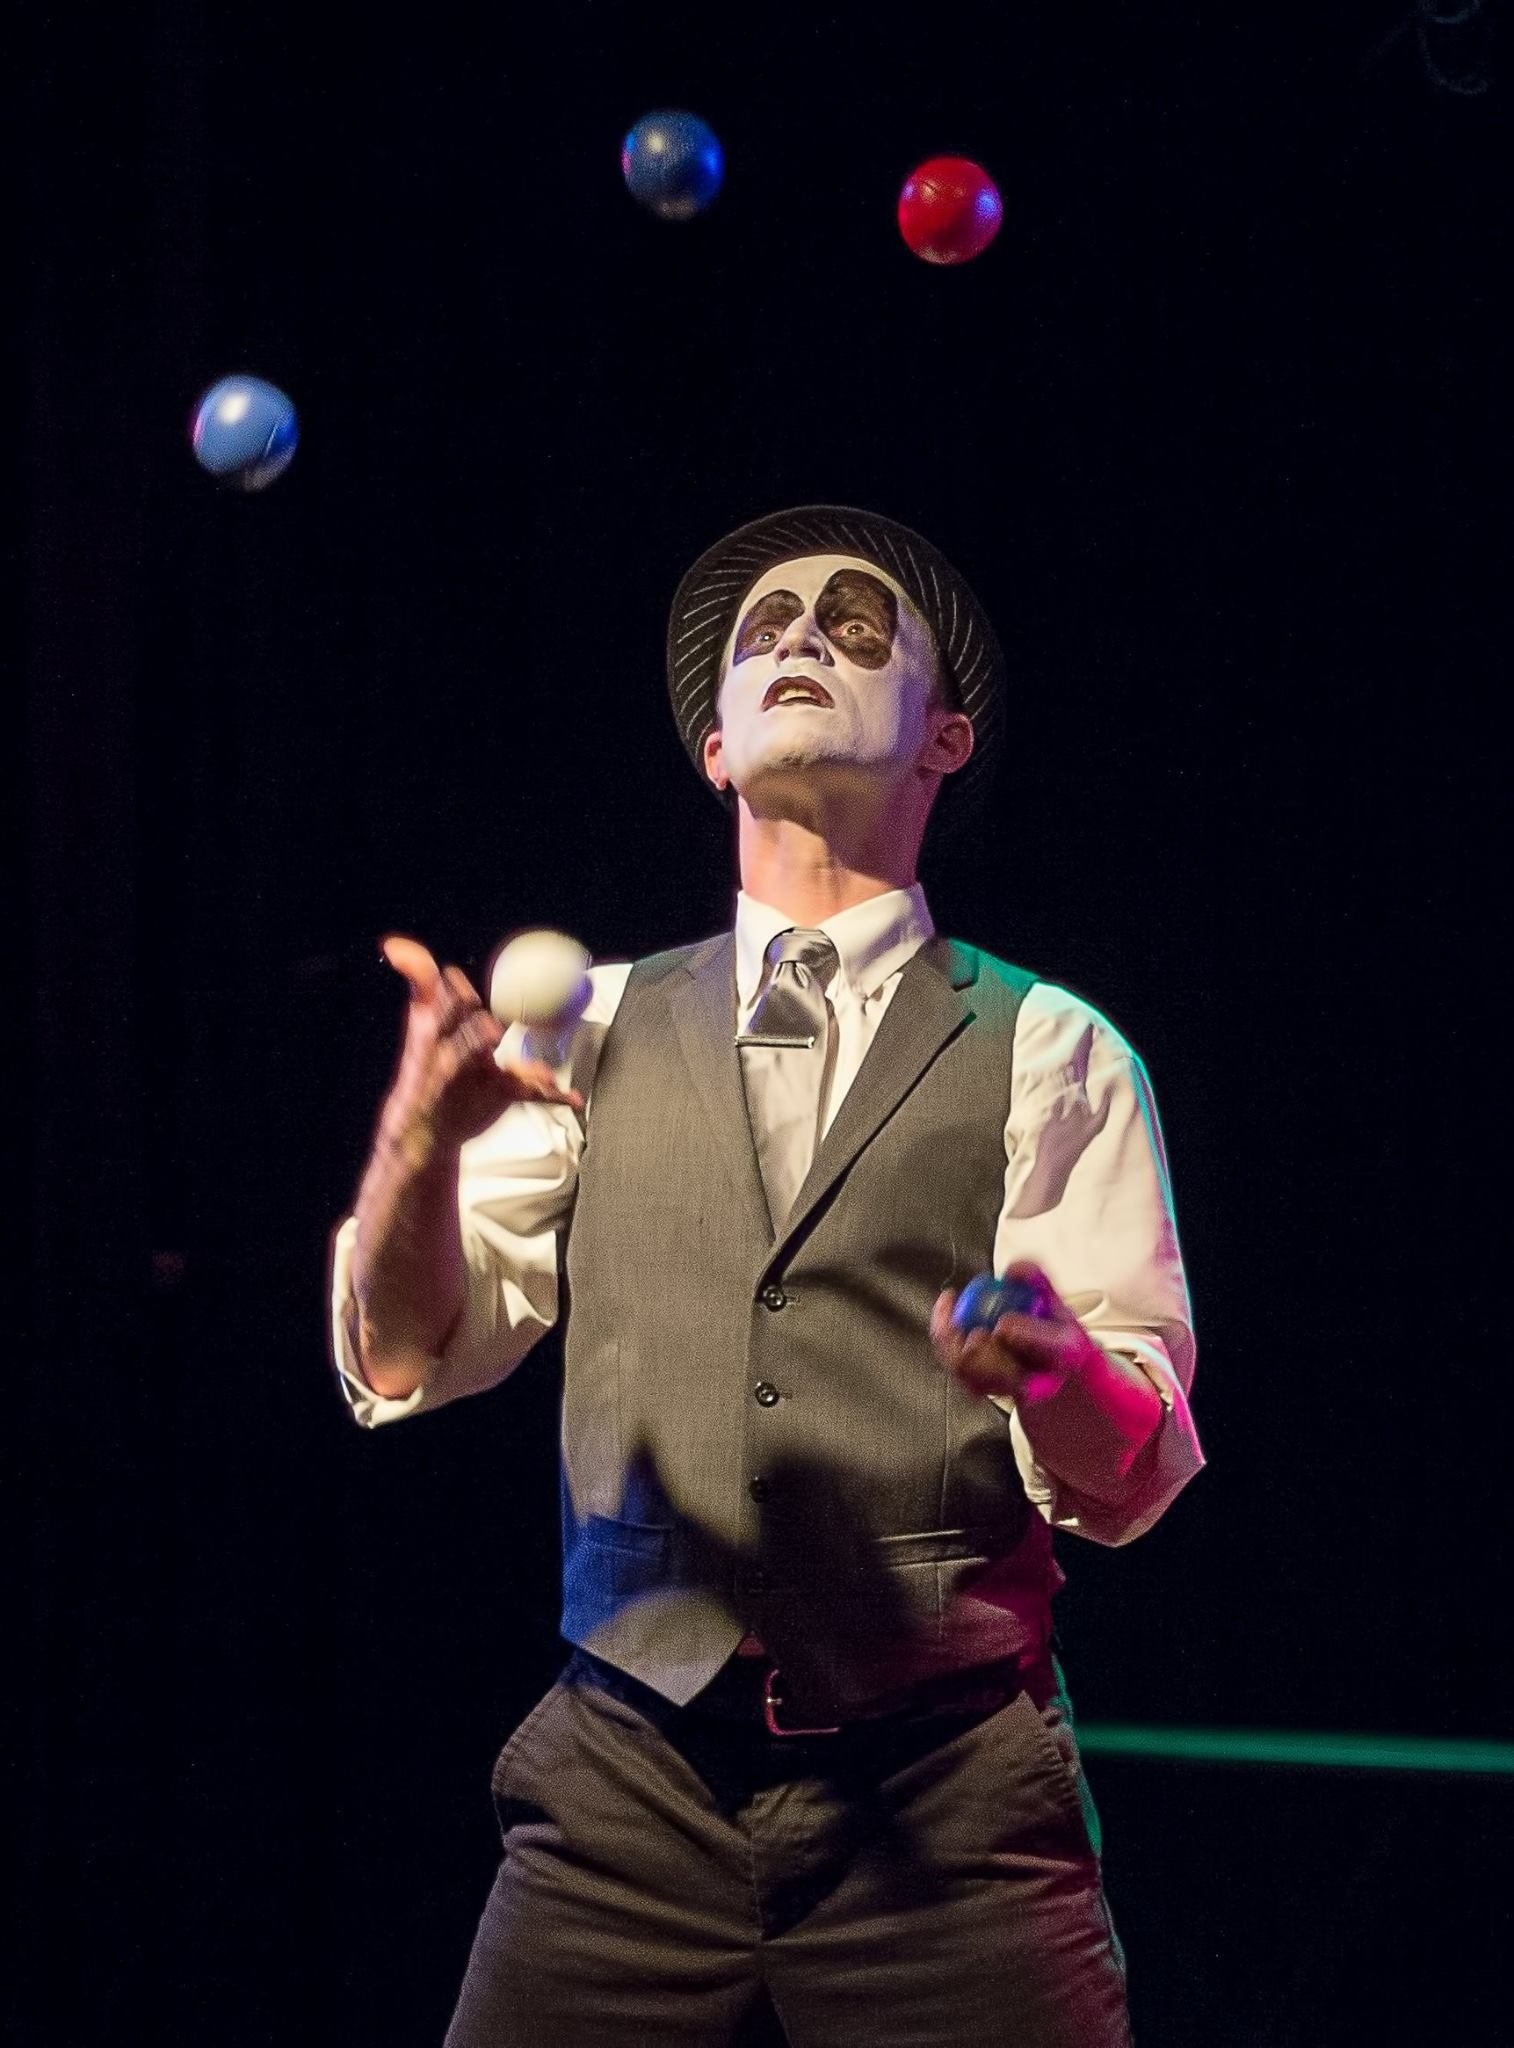 Blipey Local Comedy Clown For Hire For Events In Kansas